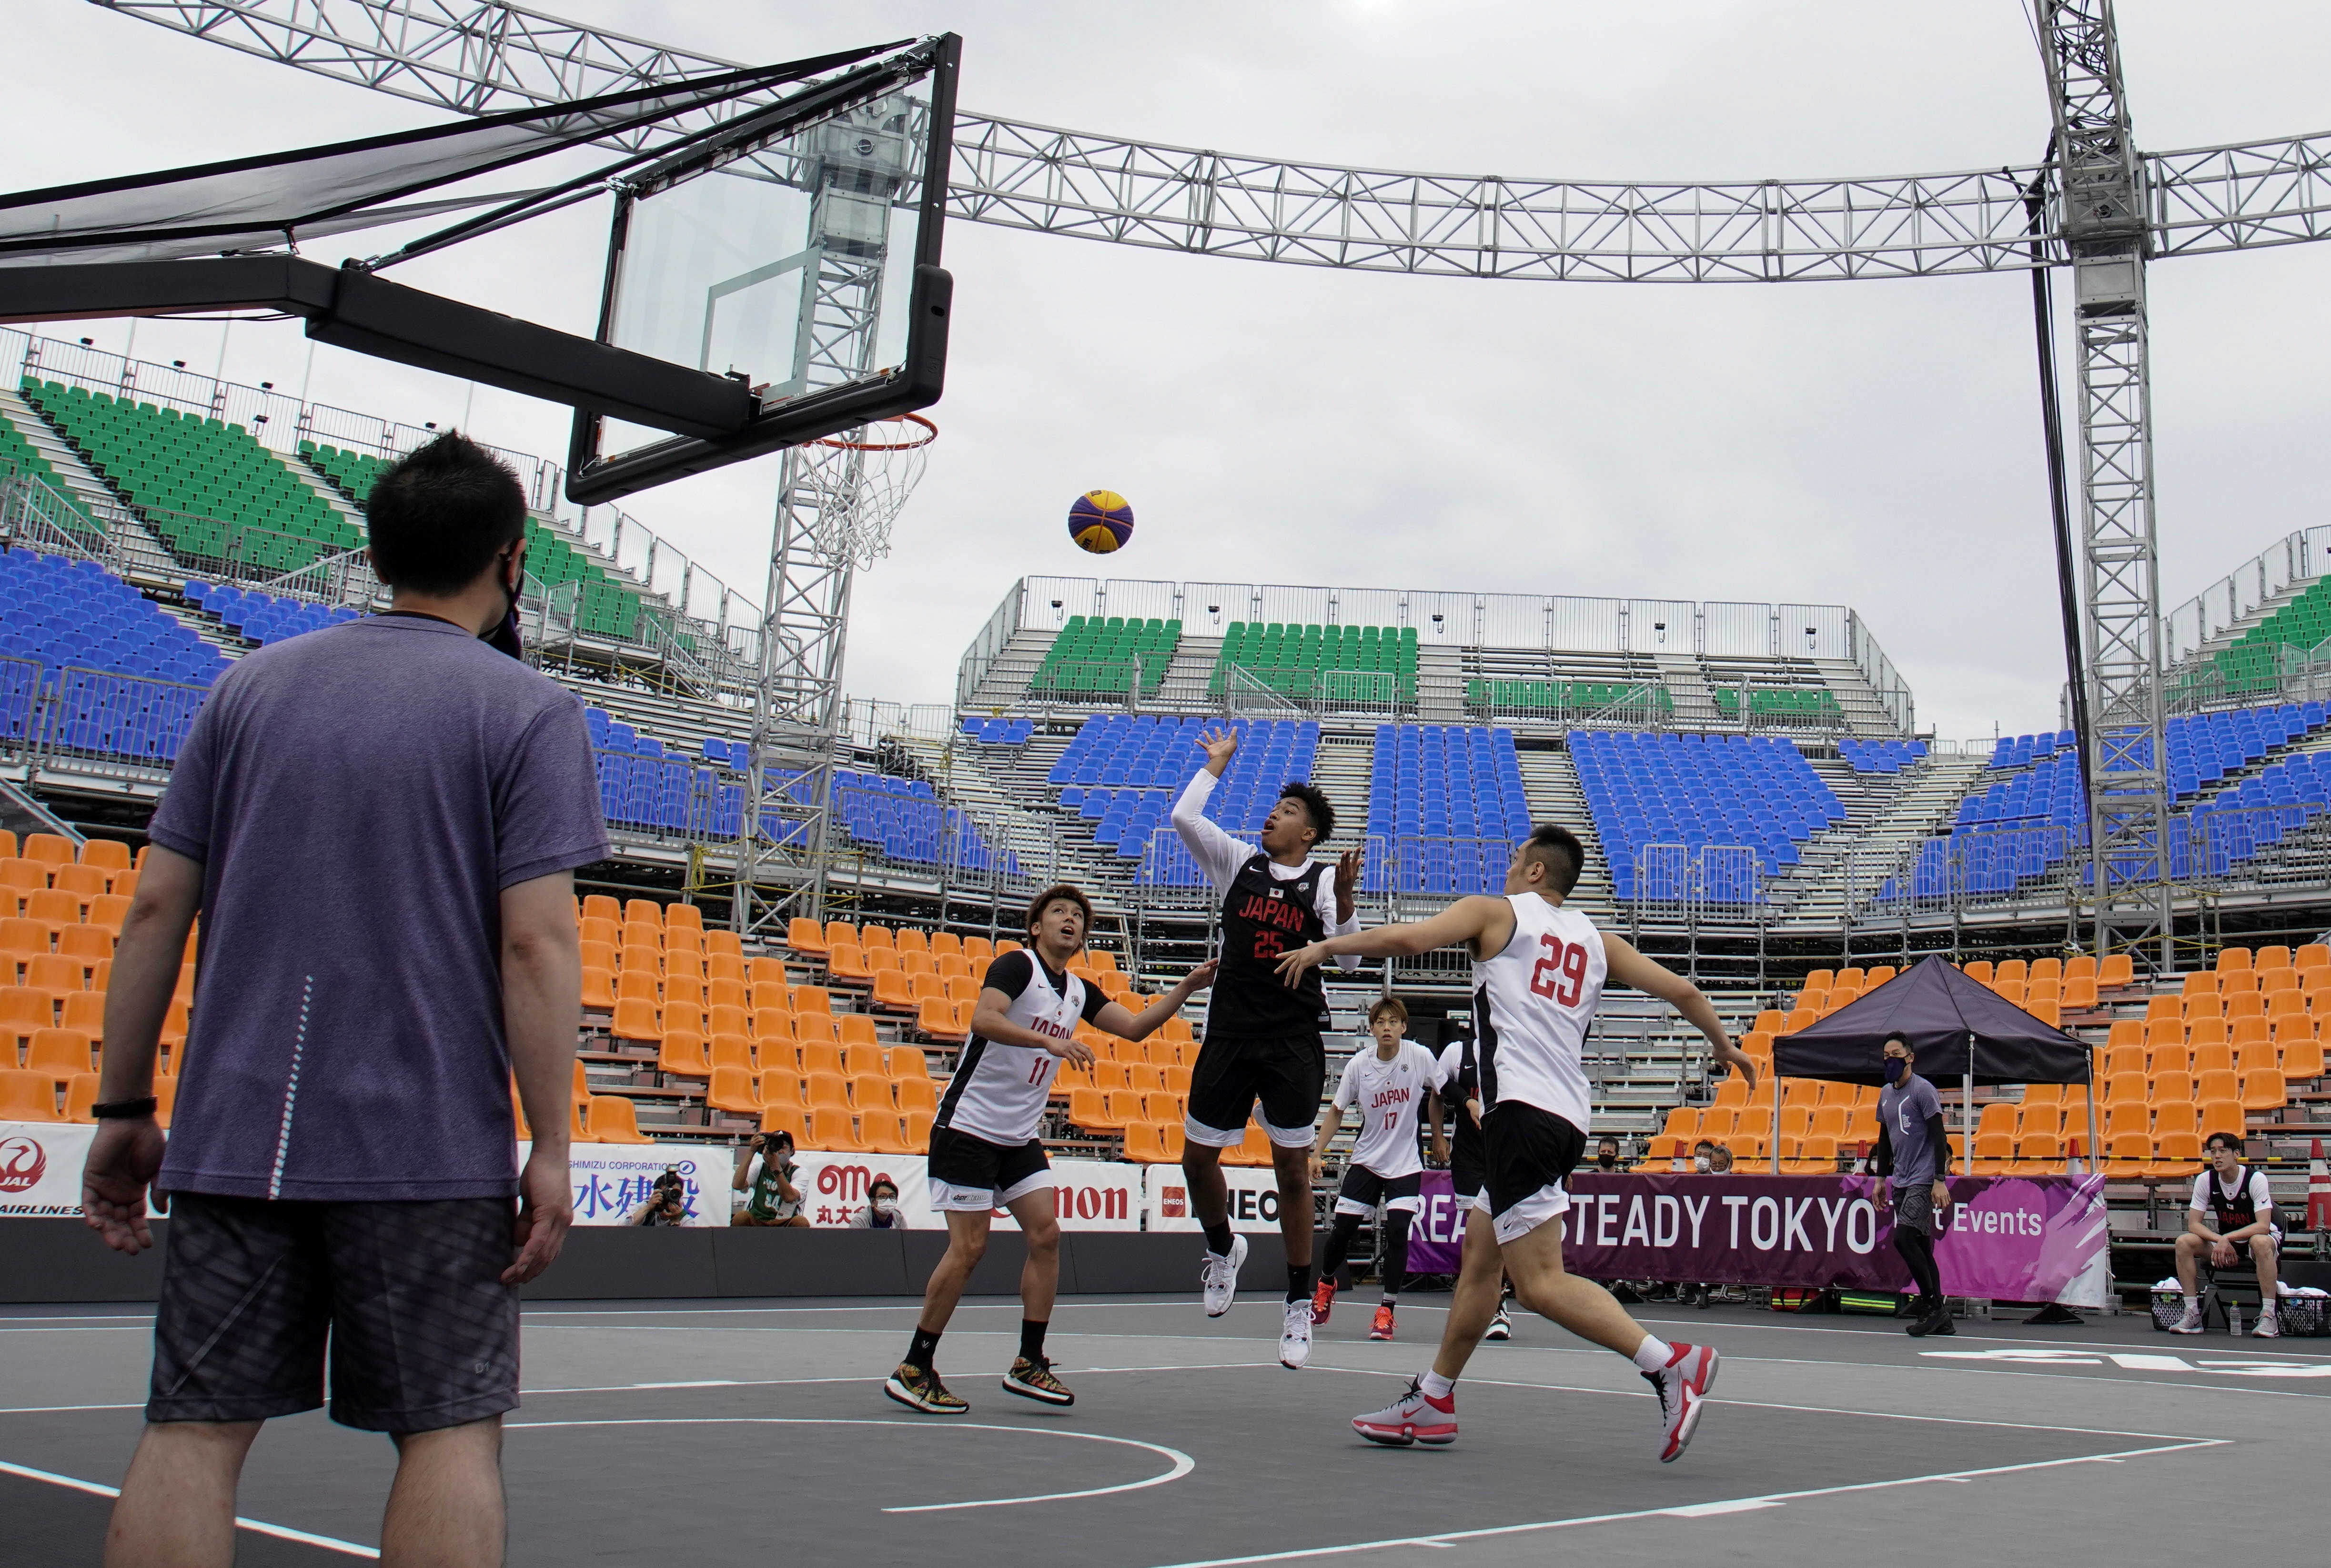 Participants compete in a men's 3x3 basketball event during the Tokyo 2020 Olympics 3x3 basketball test event at Aomi Urban Sports Park in Tokyo, Japan May 16, 2021. REUTERS/Naoki Ogura